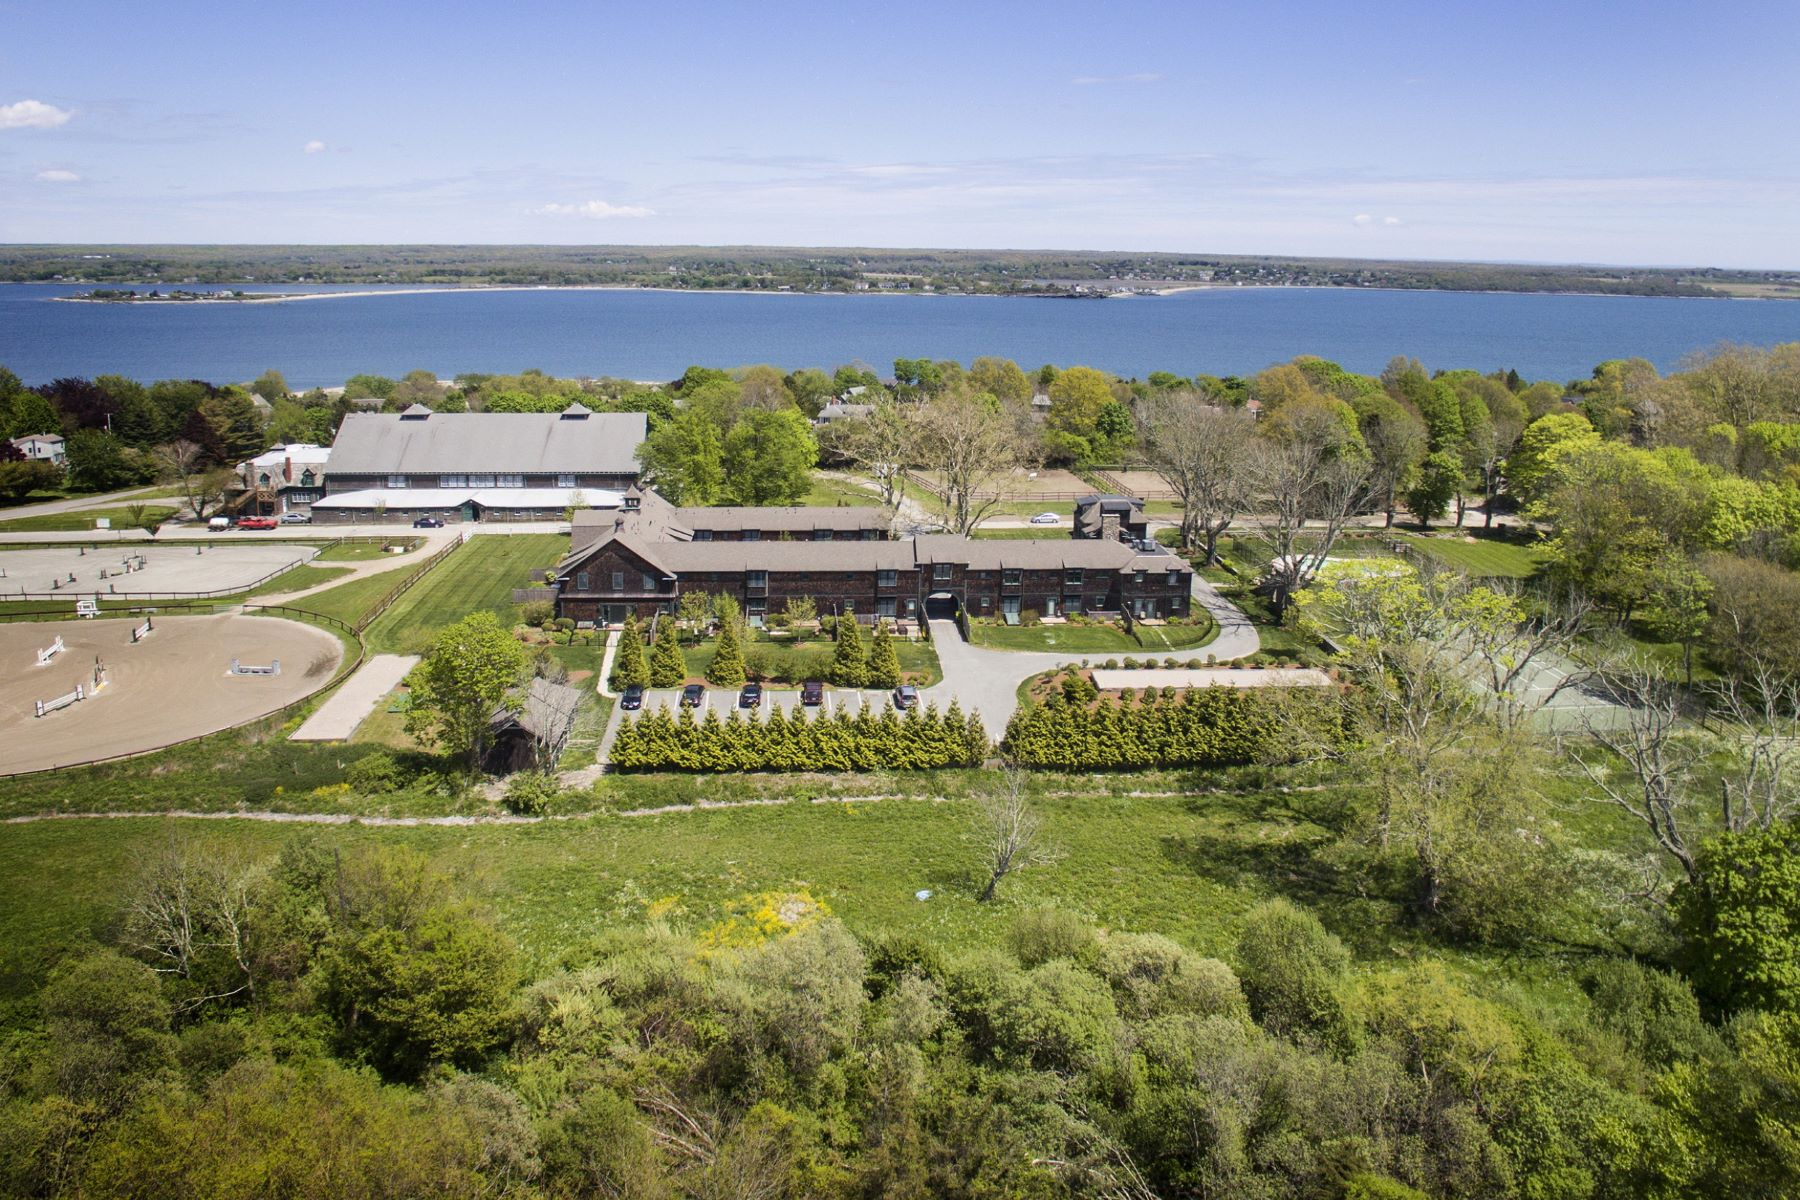 Additional photo for property listing at Vanderbilt Stable Condominiums 53 Sandy Point Farm Road 5 Portsmouth, Rhode Island 02871 United States